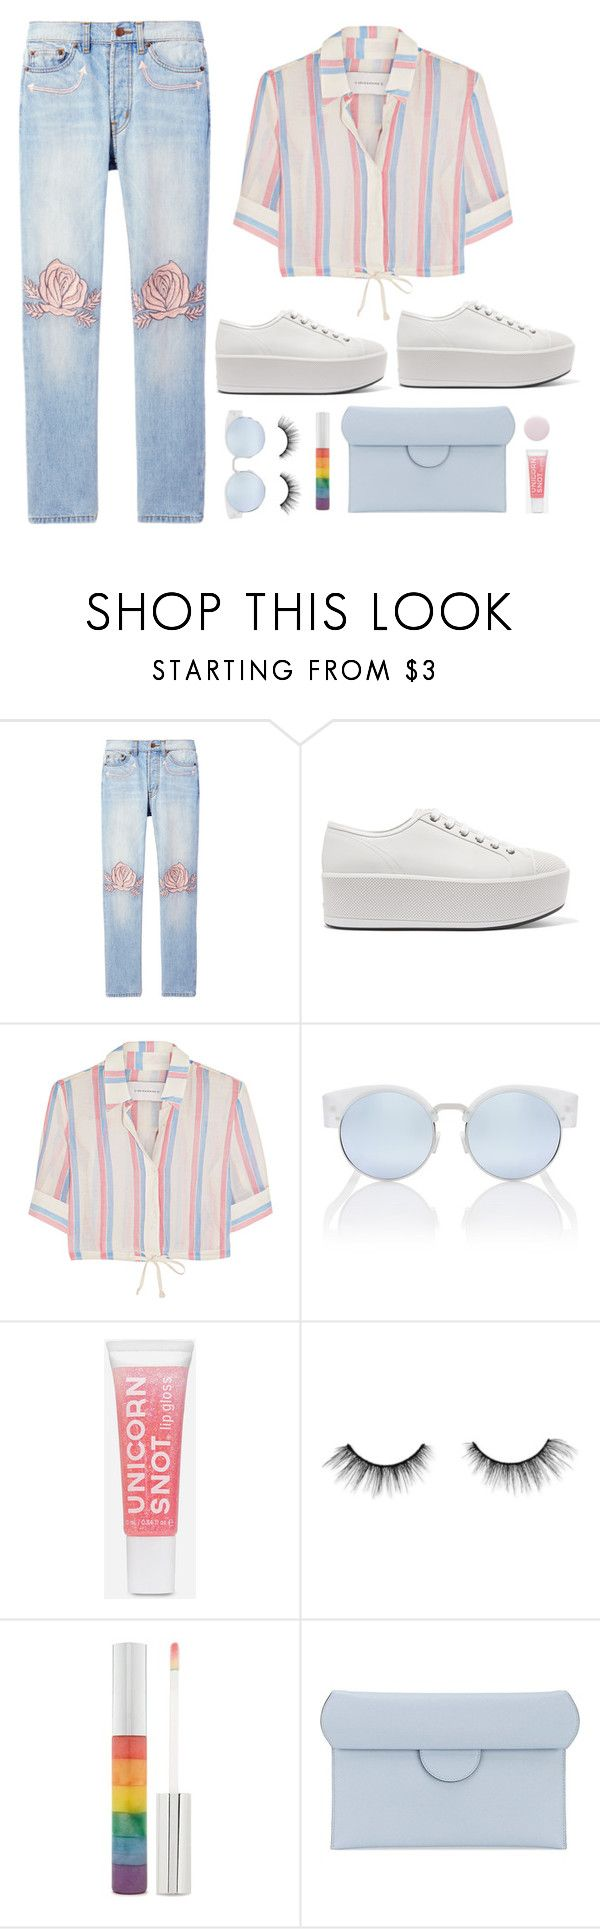 """""""Platform Sneakers"""" by shoelover220 ❤ liked on Polyvore featuring Bliss and Mischief, Prada, Solid & Striped, tarte, Forever 21, Roksanda, Nails Inc. and platform"""